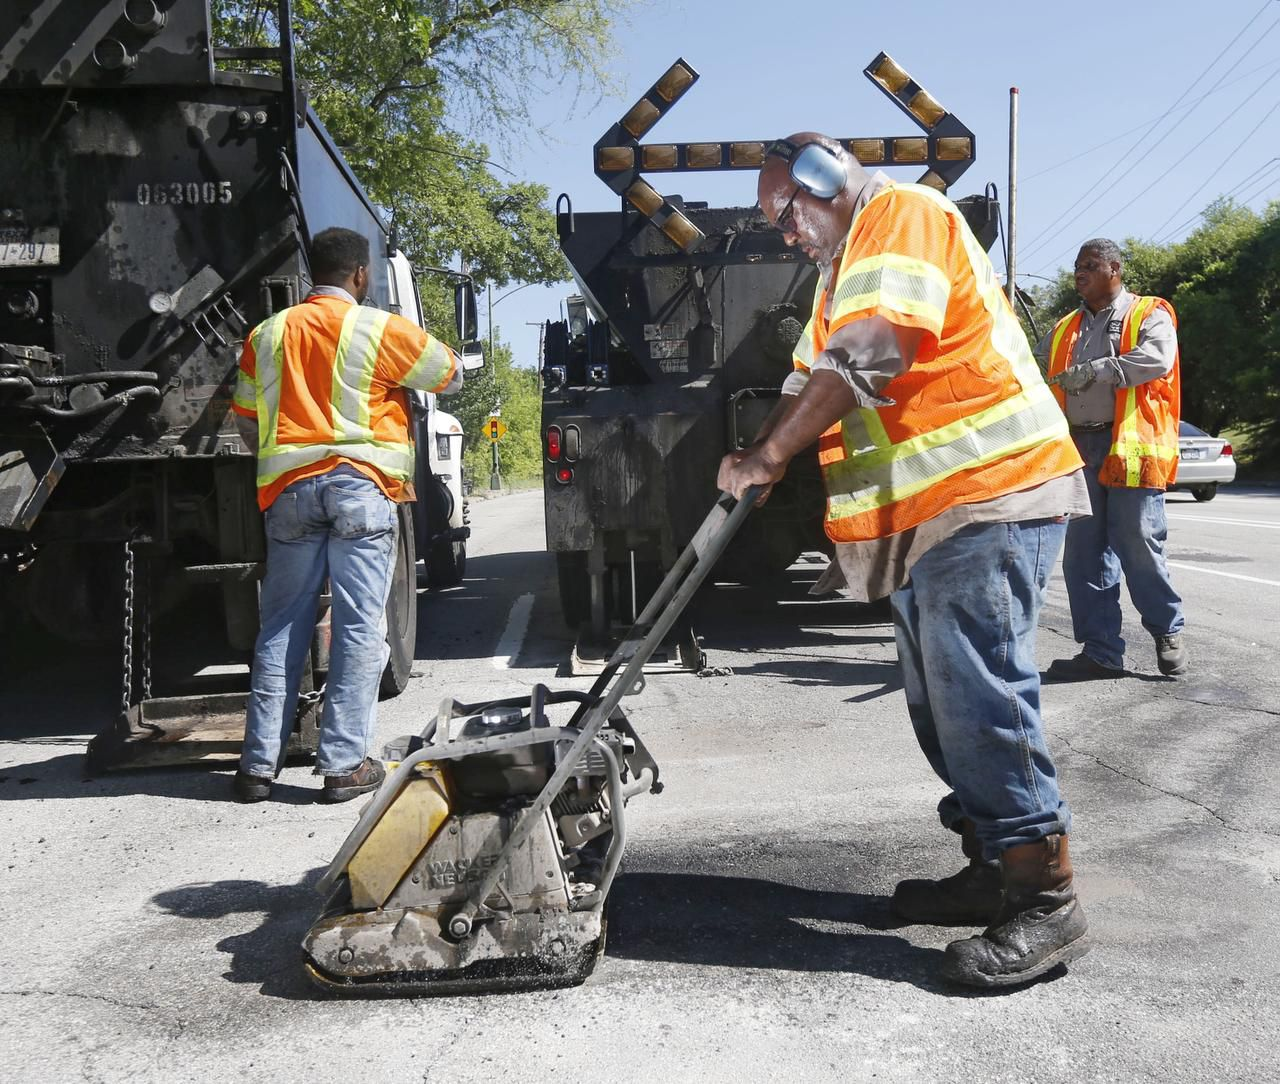 City employee Ricky King worked to patch a pothole Wednesday on Harry Hines Boulevard. The city says Dallas residents ranked streets as their No. 1 priority in a 2014 survey.